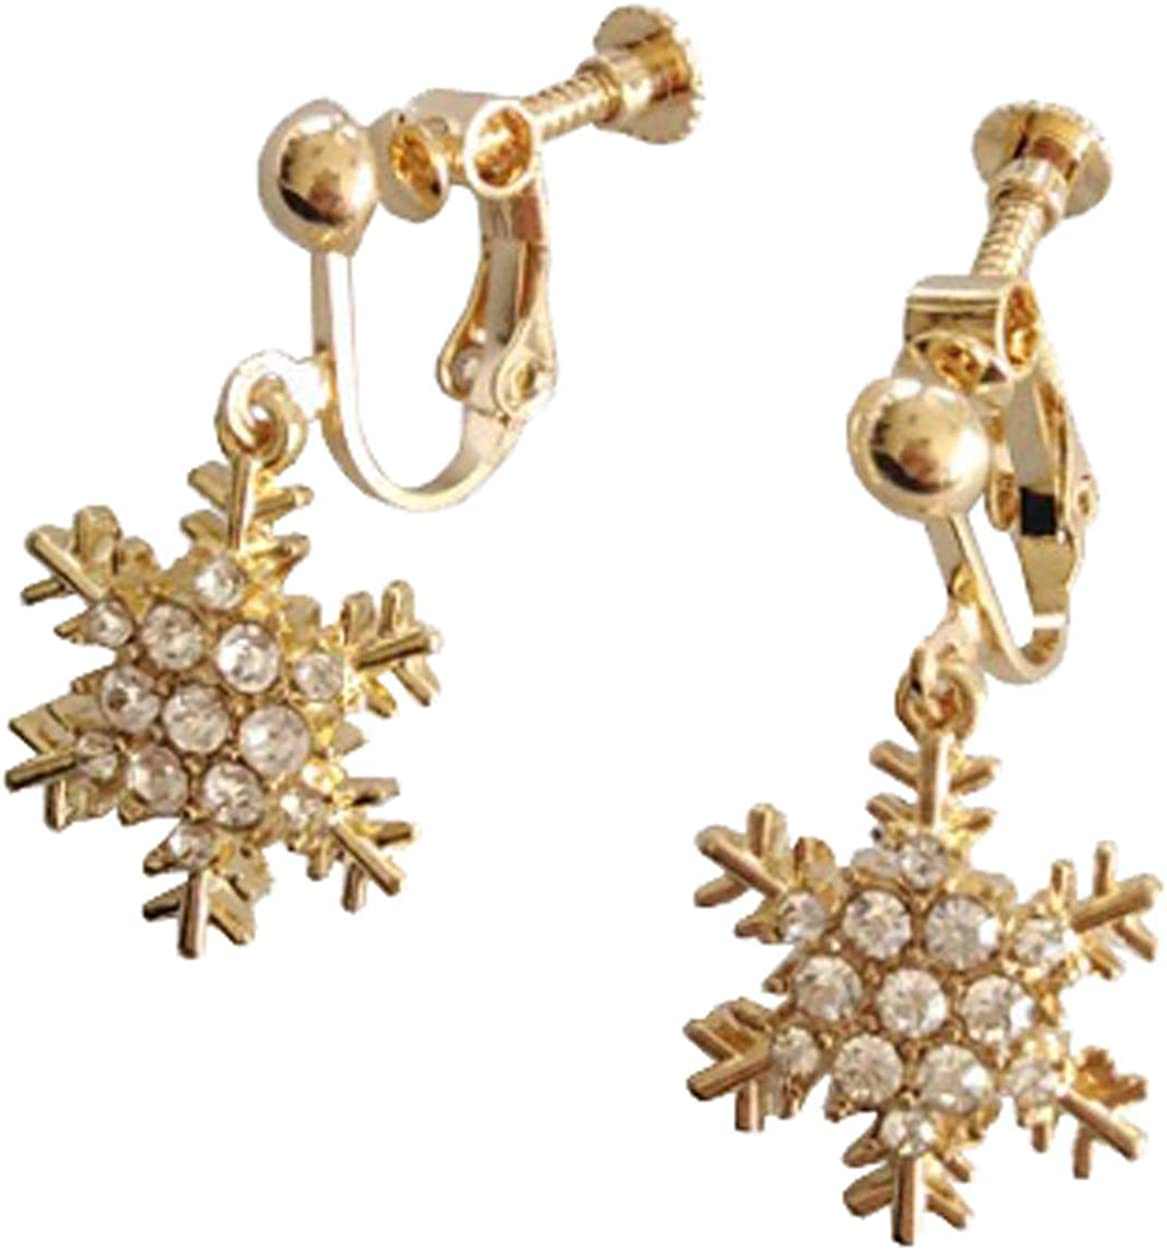 Fashion Snowflake Clip on Earrings Rhinestone Leaf Dangle Hoops Drop Gold Plated Non Pierced Ears for Girls Women Christmas Party Winter Gifts